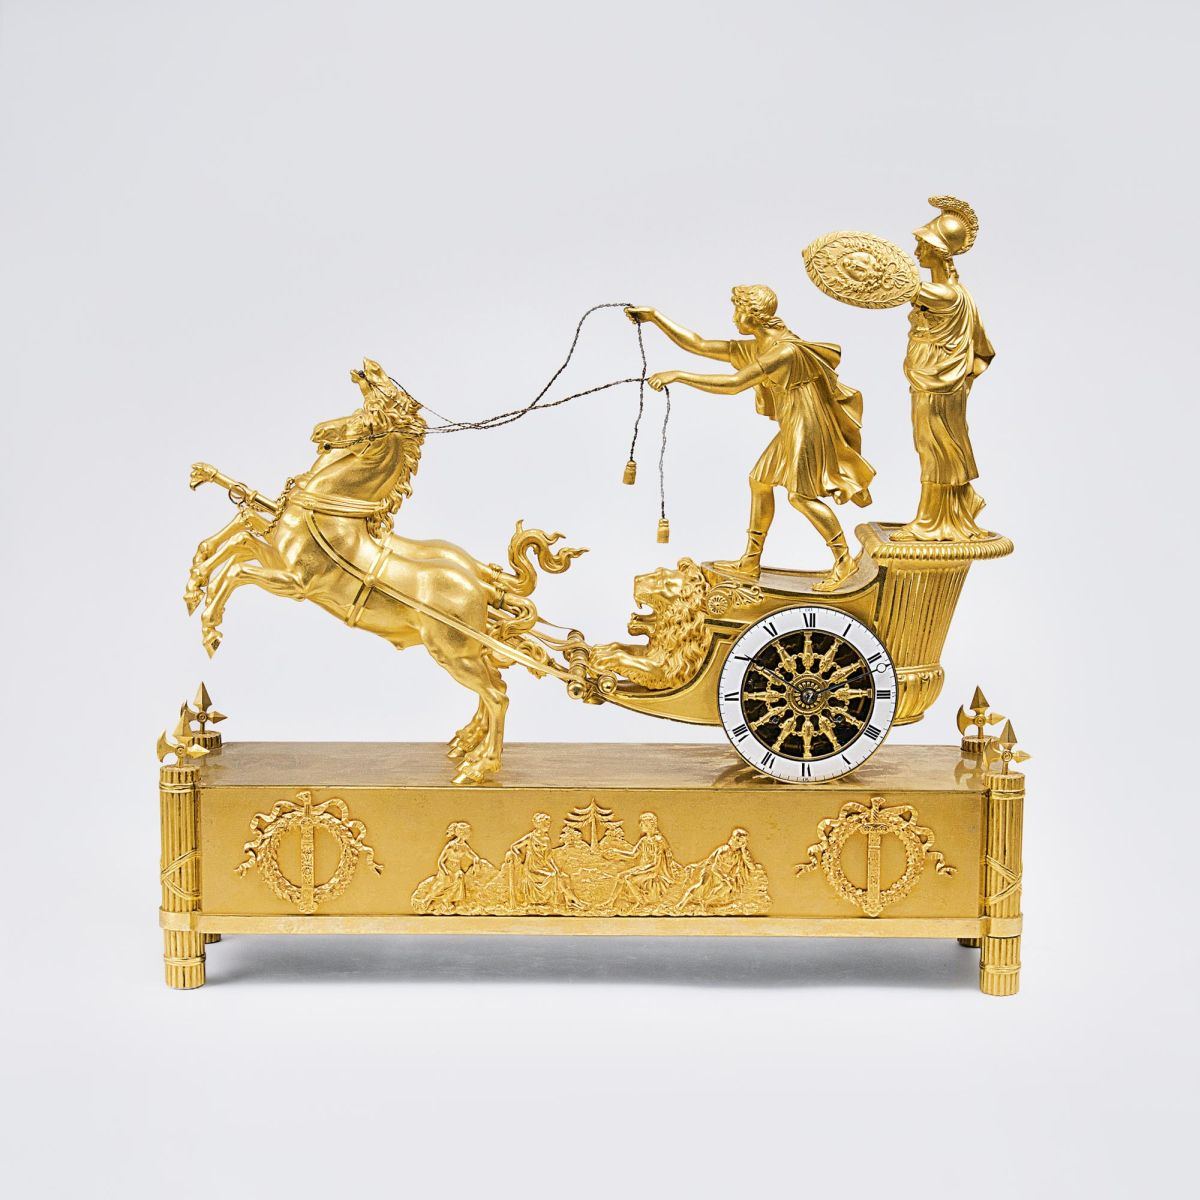 An opulent Empire Pendule 'Chariot of Telemachos'